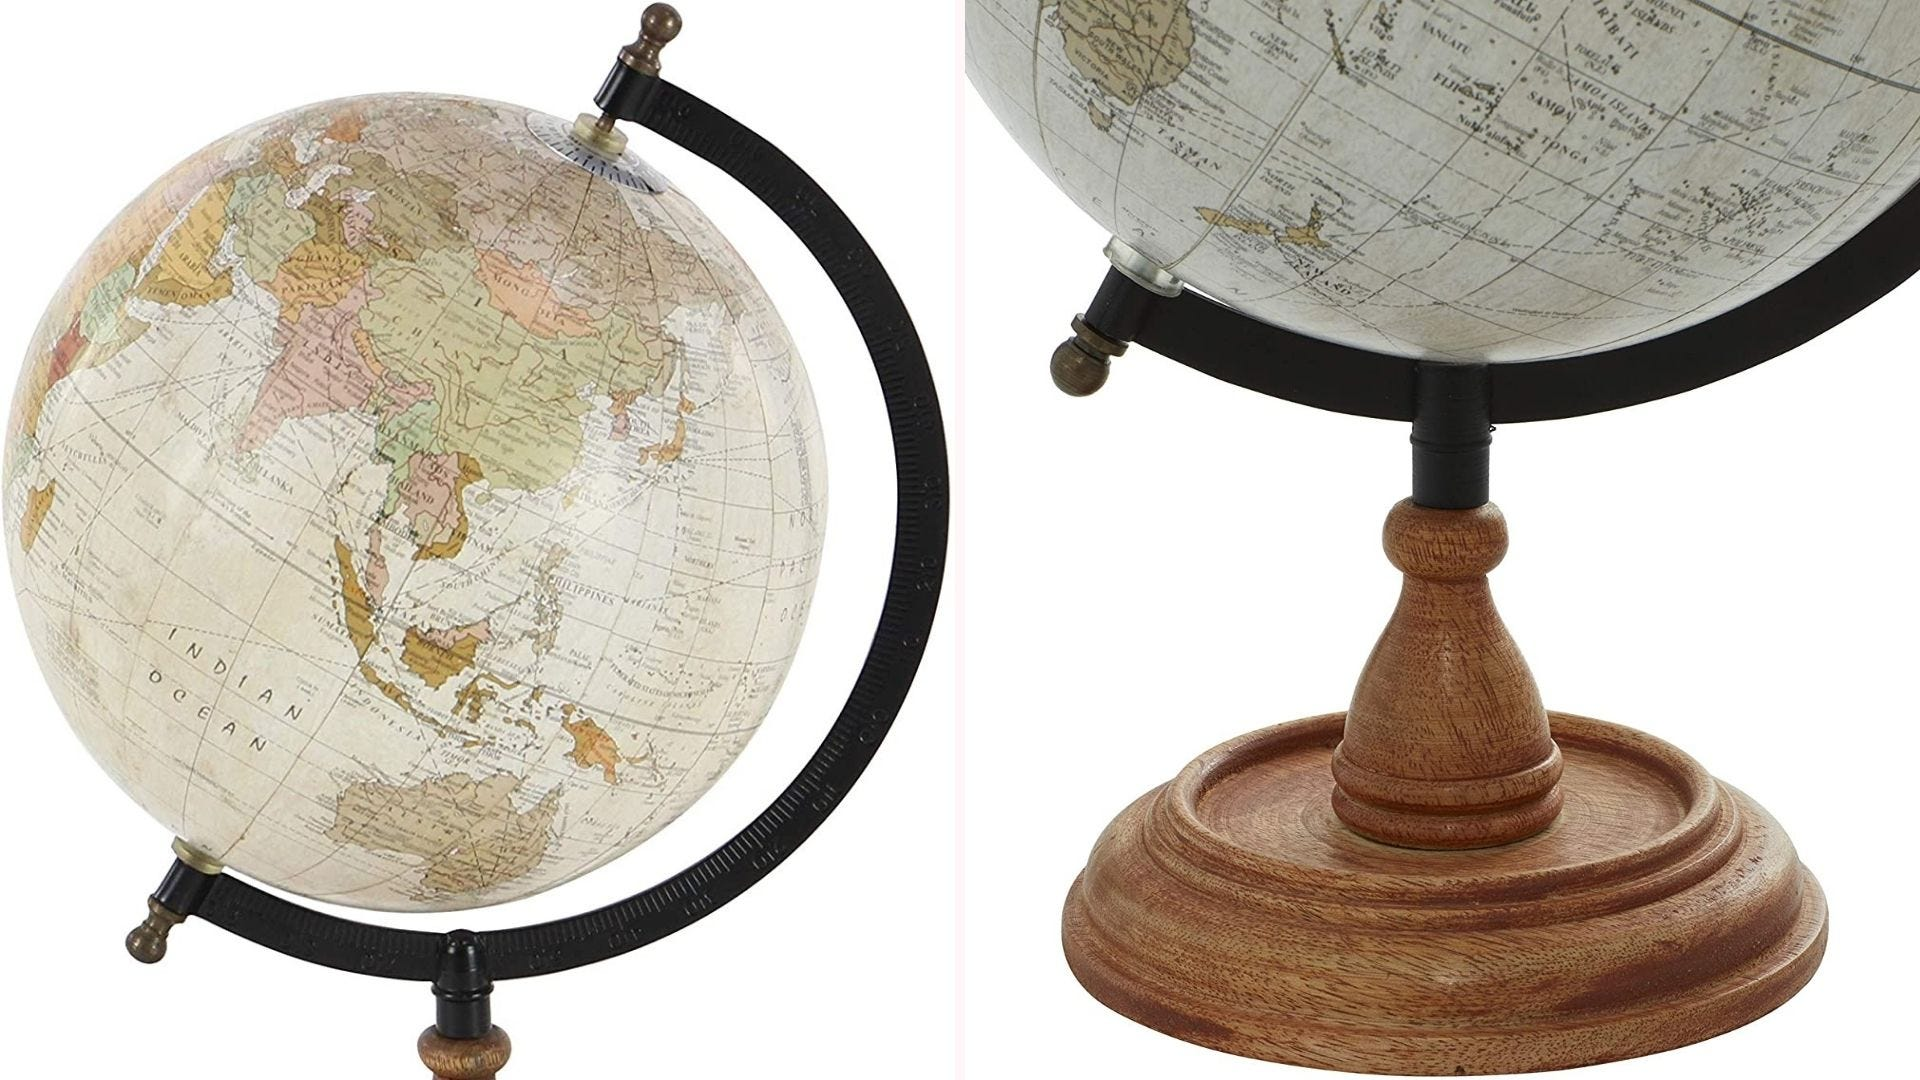 On the left, a closeup view of a 12-inch globe that features a highly detailed map depicted with an old-fashioned, muted color pattern. On the right, a closeup view of the globe's polished mango wood base.